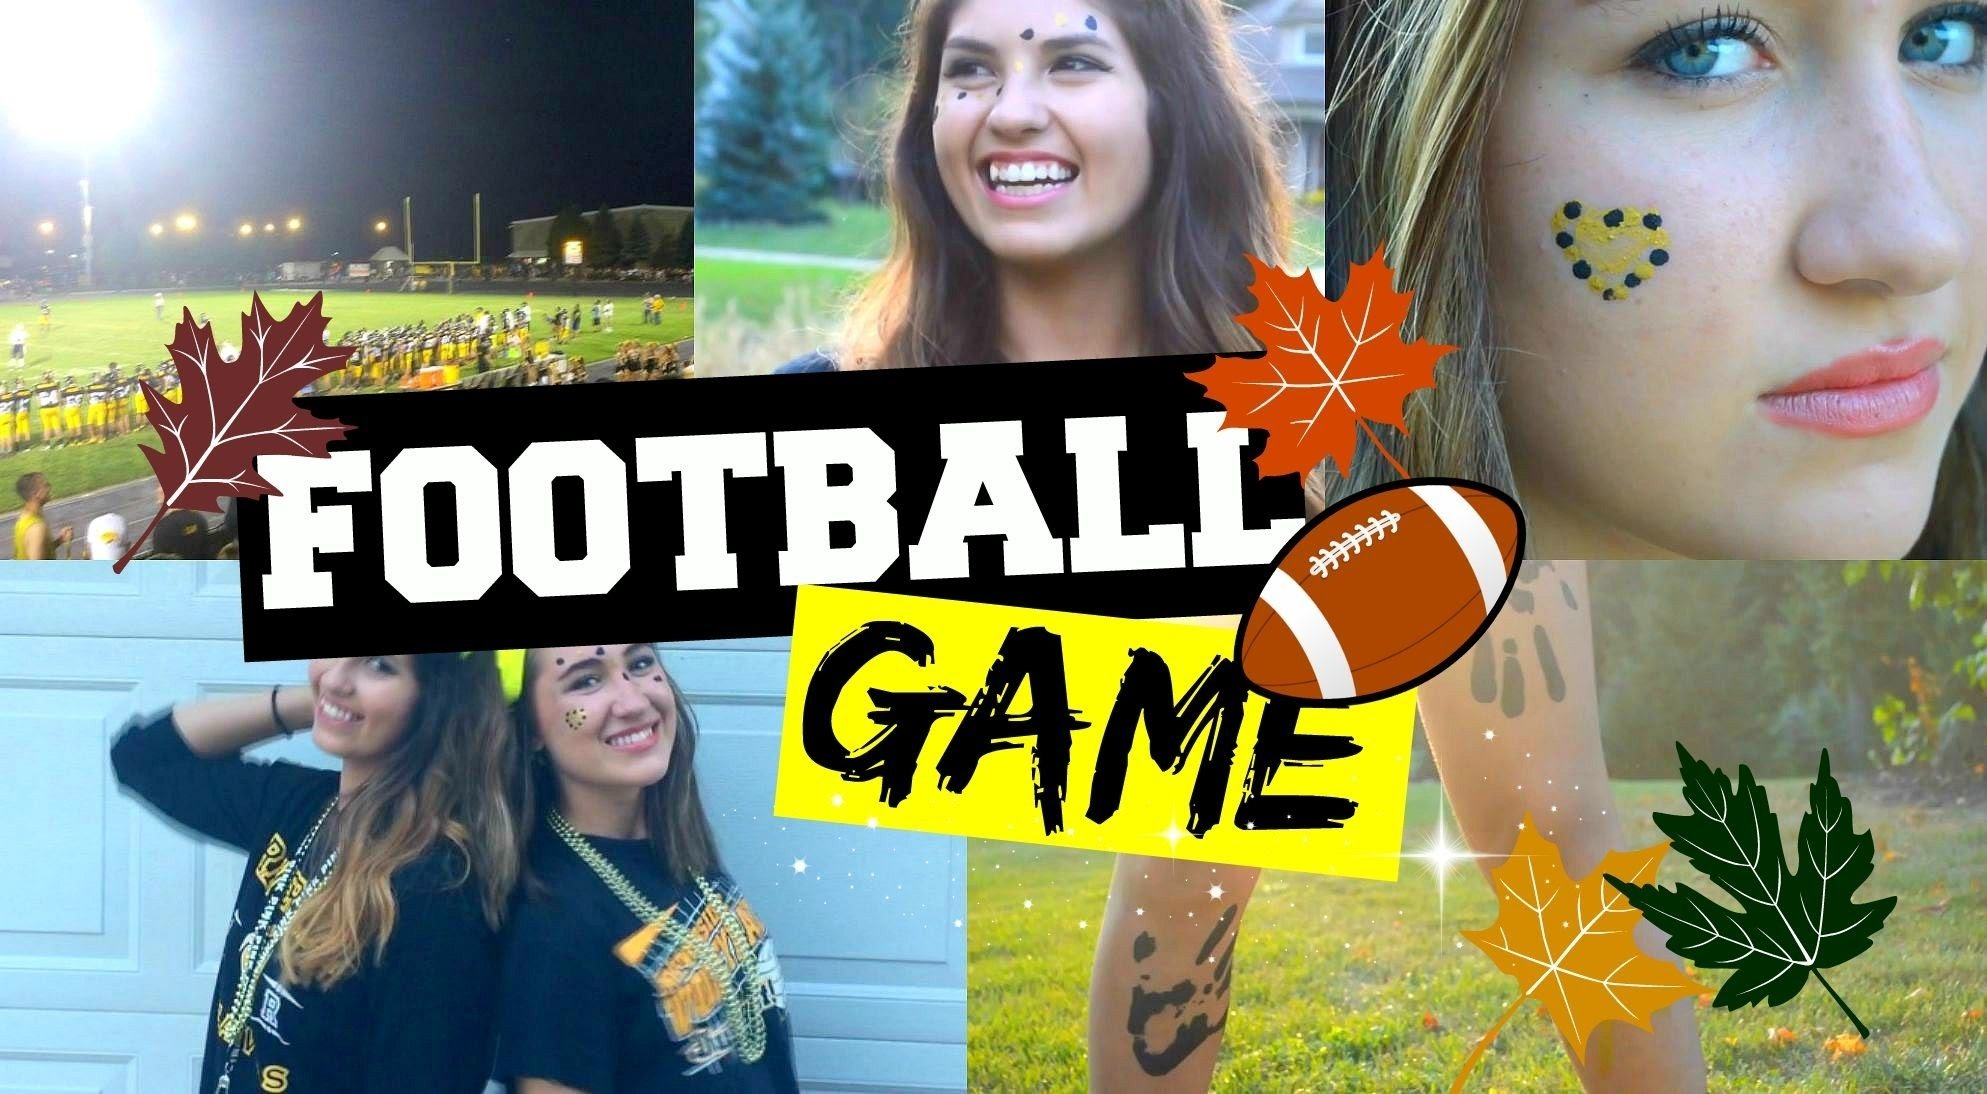 football game: makeup, outfits, easy facepaint ideas + how to style